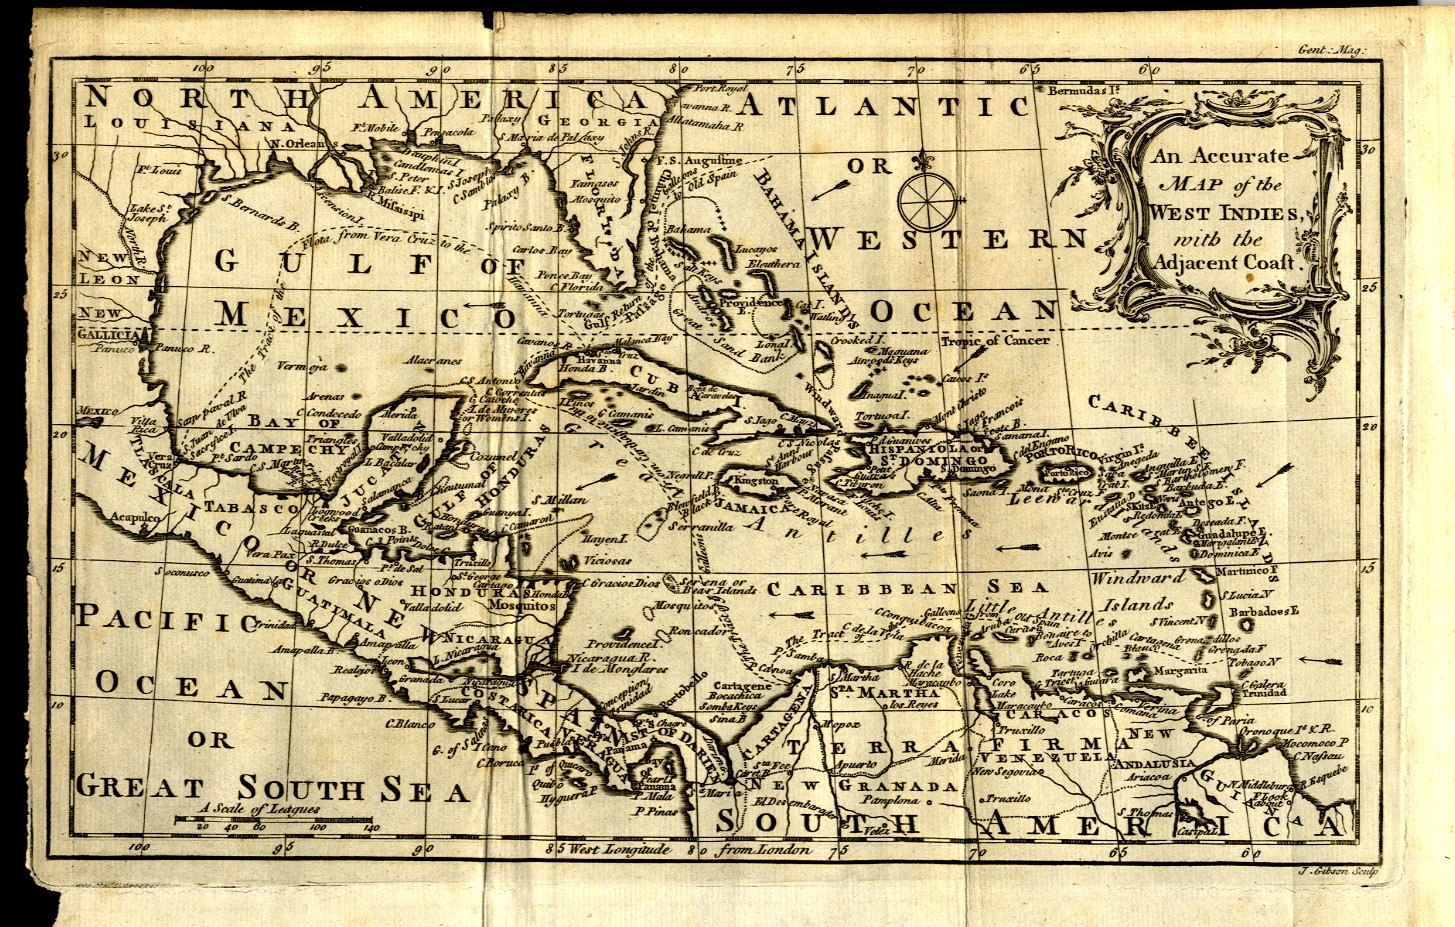 1762 ACCURATE MAP OF THE WEST INDIES AND UNITED STATES COAST FLORIDA ...